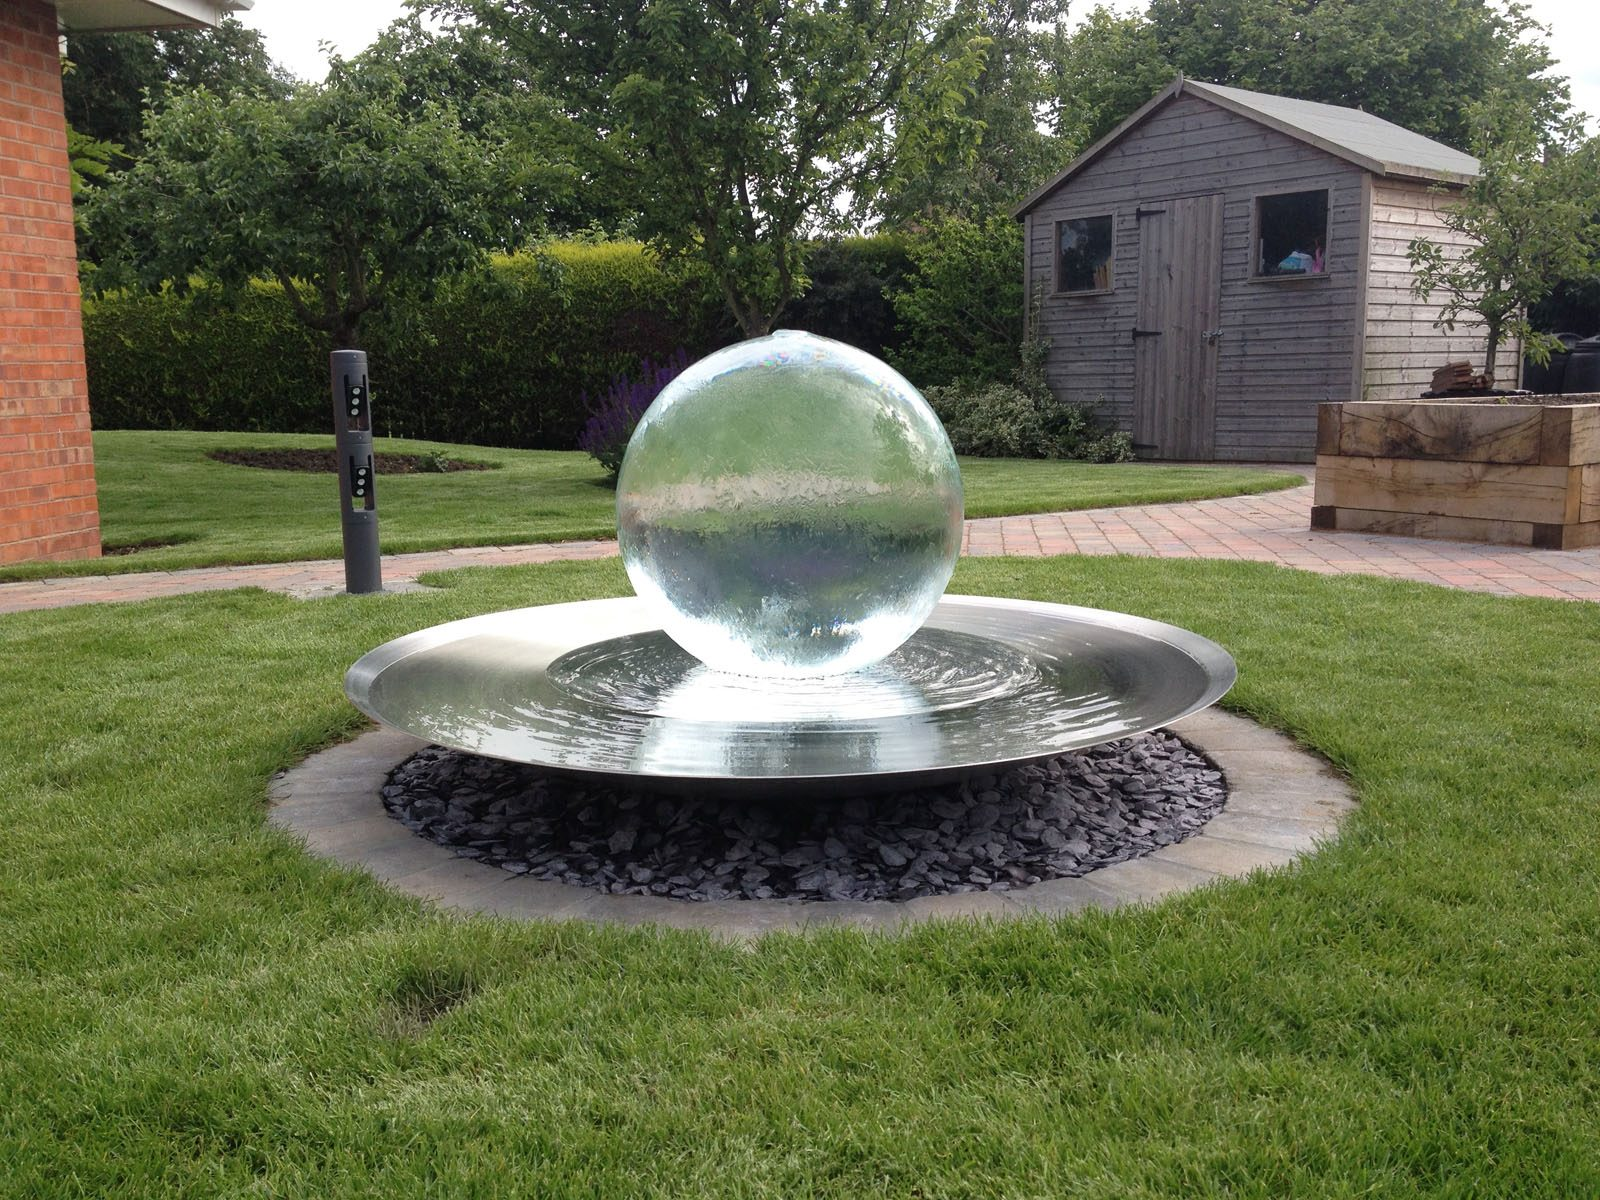 Bespoke spherical water feature and custom landscaping